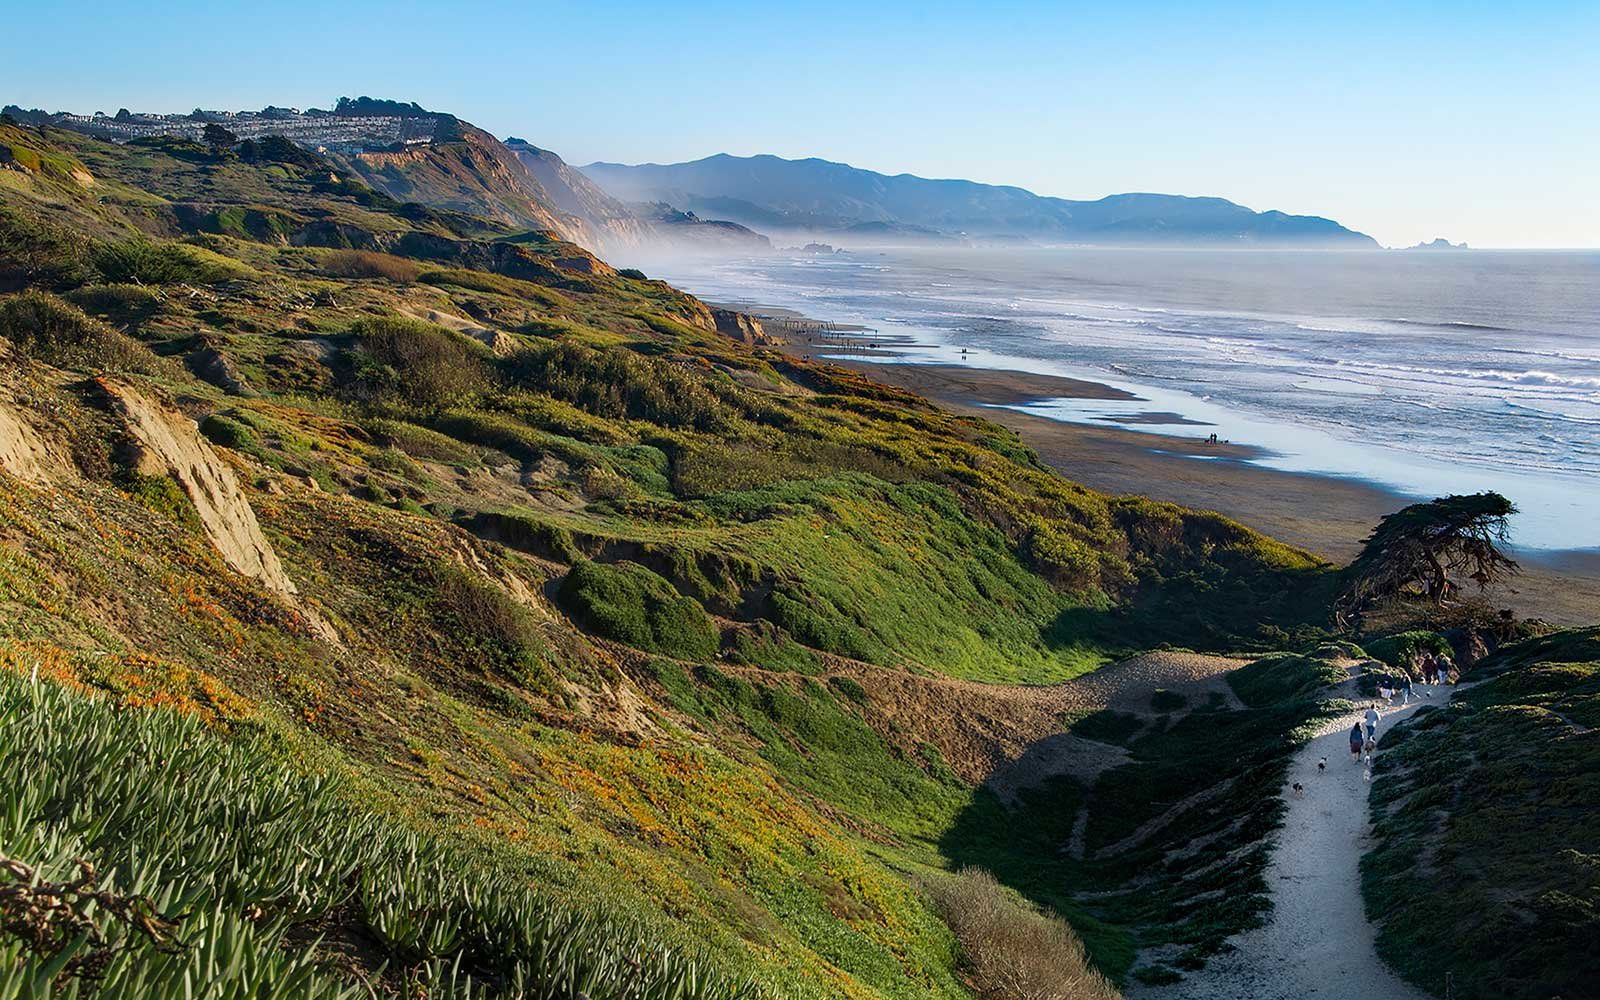 Fort Funston, San Francisco, California